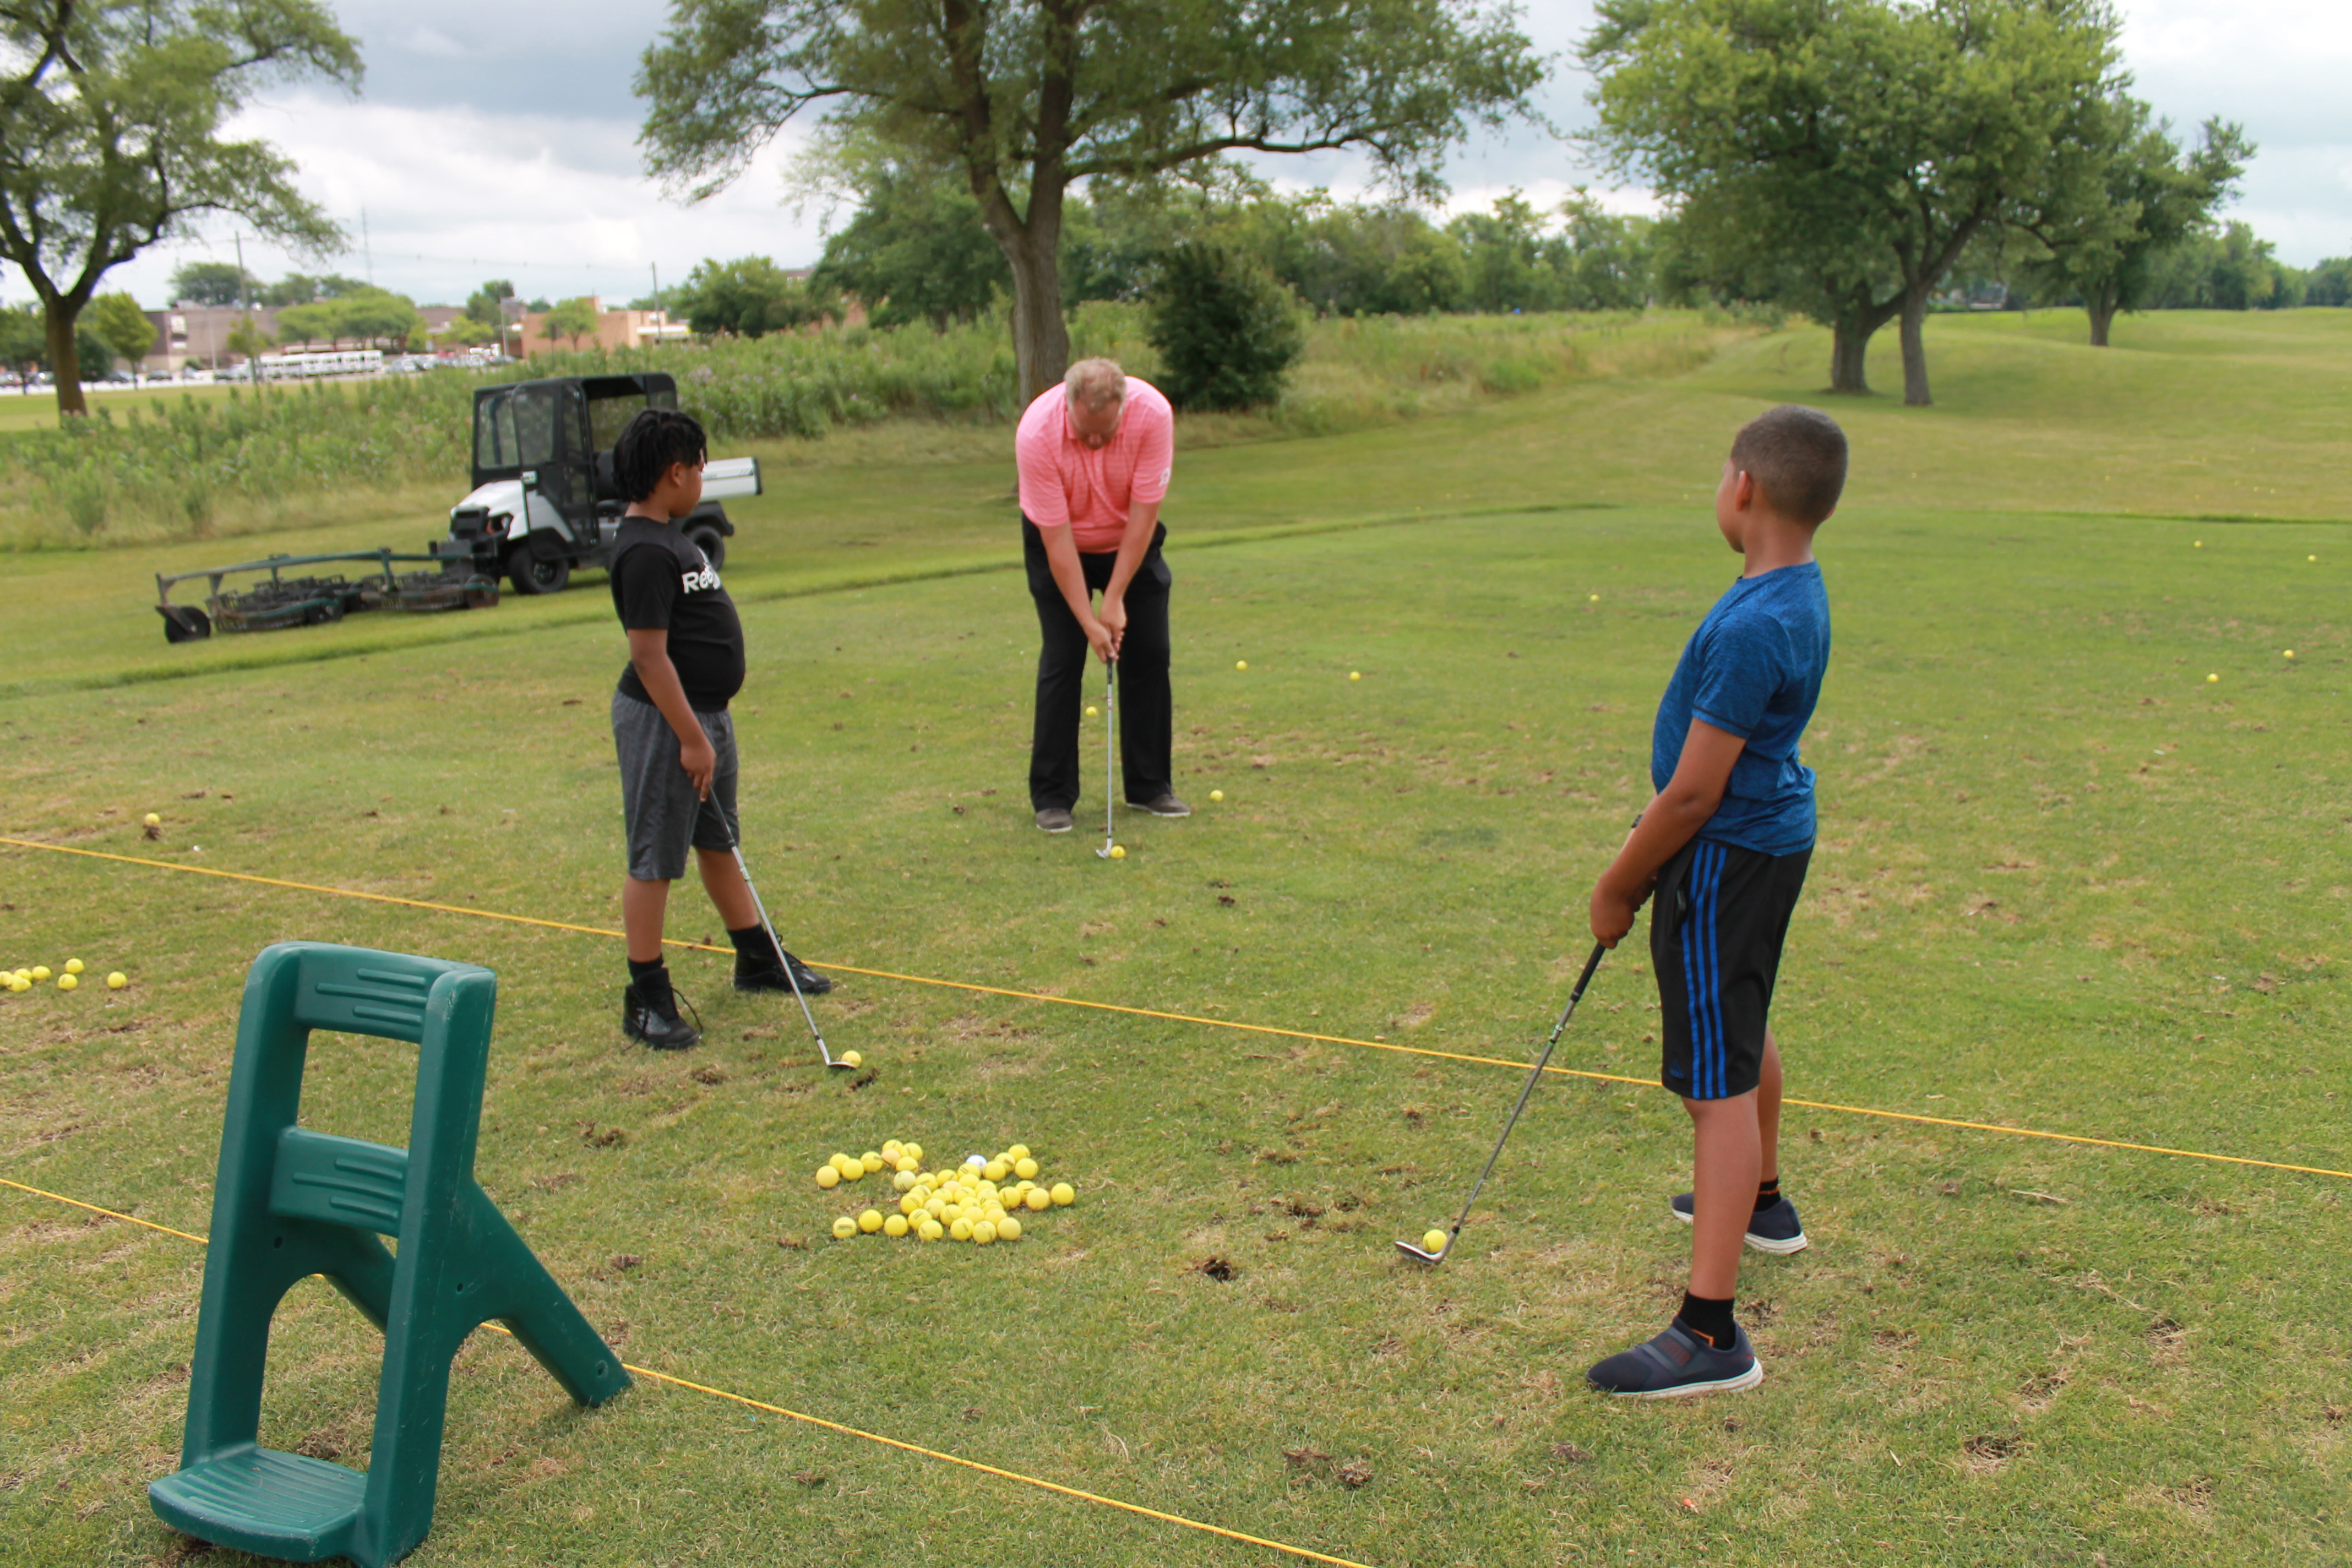 Jr. golfes at one of the many golf camps at Coyote Run..